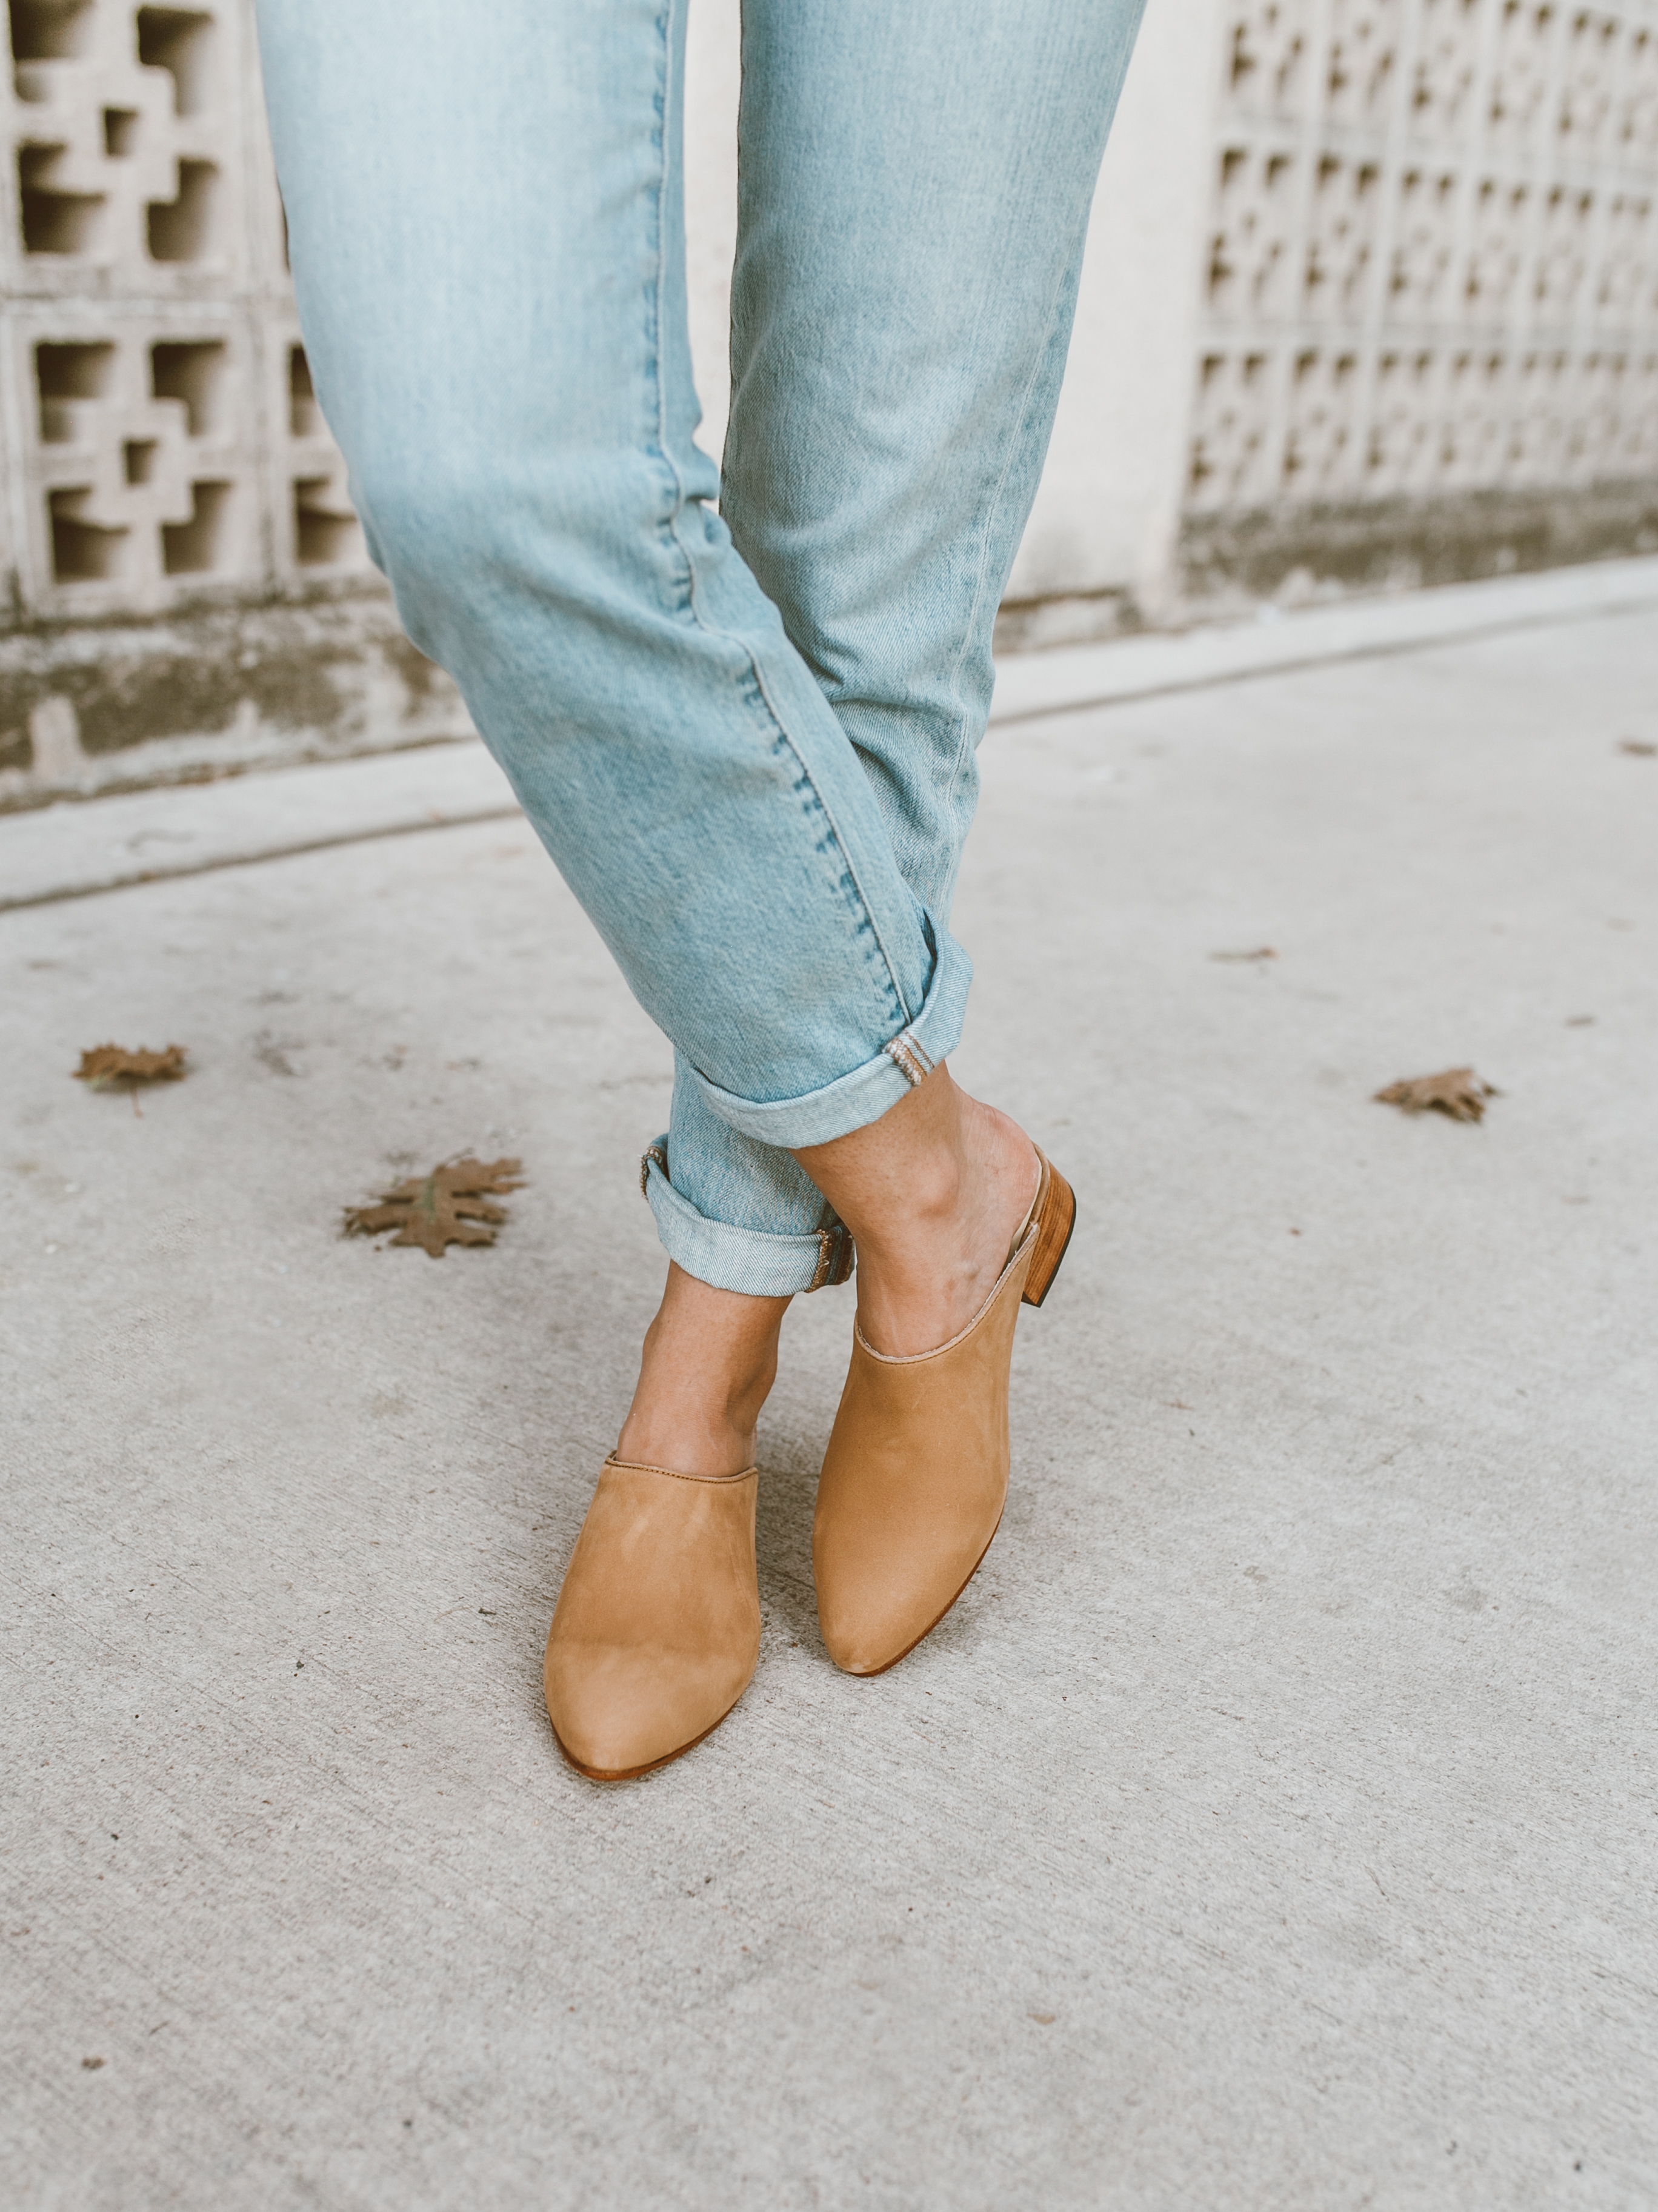 livvyland-blog-olivia-watson-austin-texas-fashion-style-blog-nisolo-tan-suede-mules-mariella-tee-jeans-outfit-1